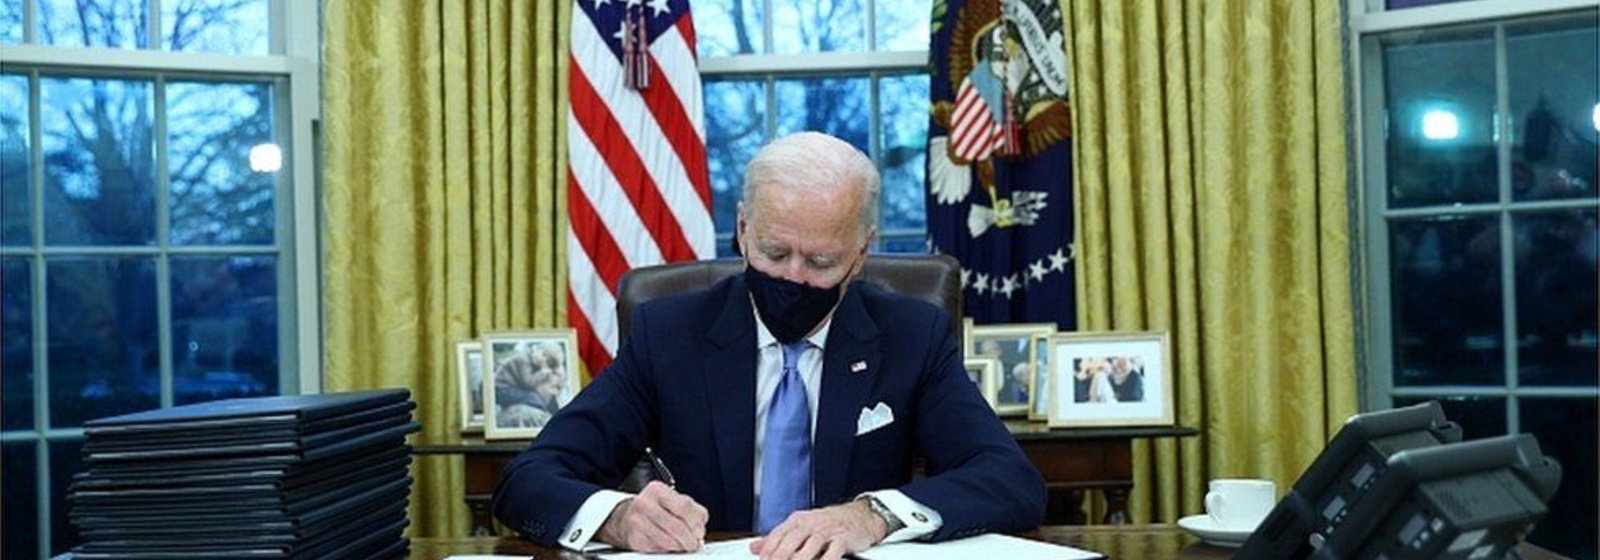 Wasting No Time: Biden Signs 17 Executive Orders on First Day